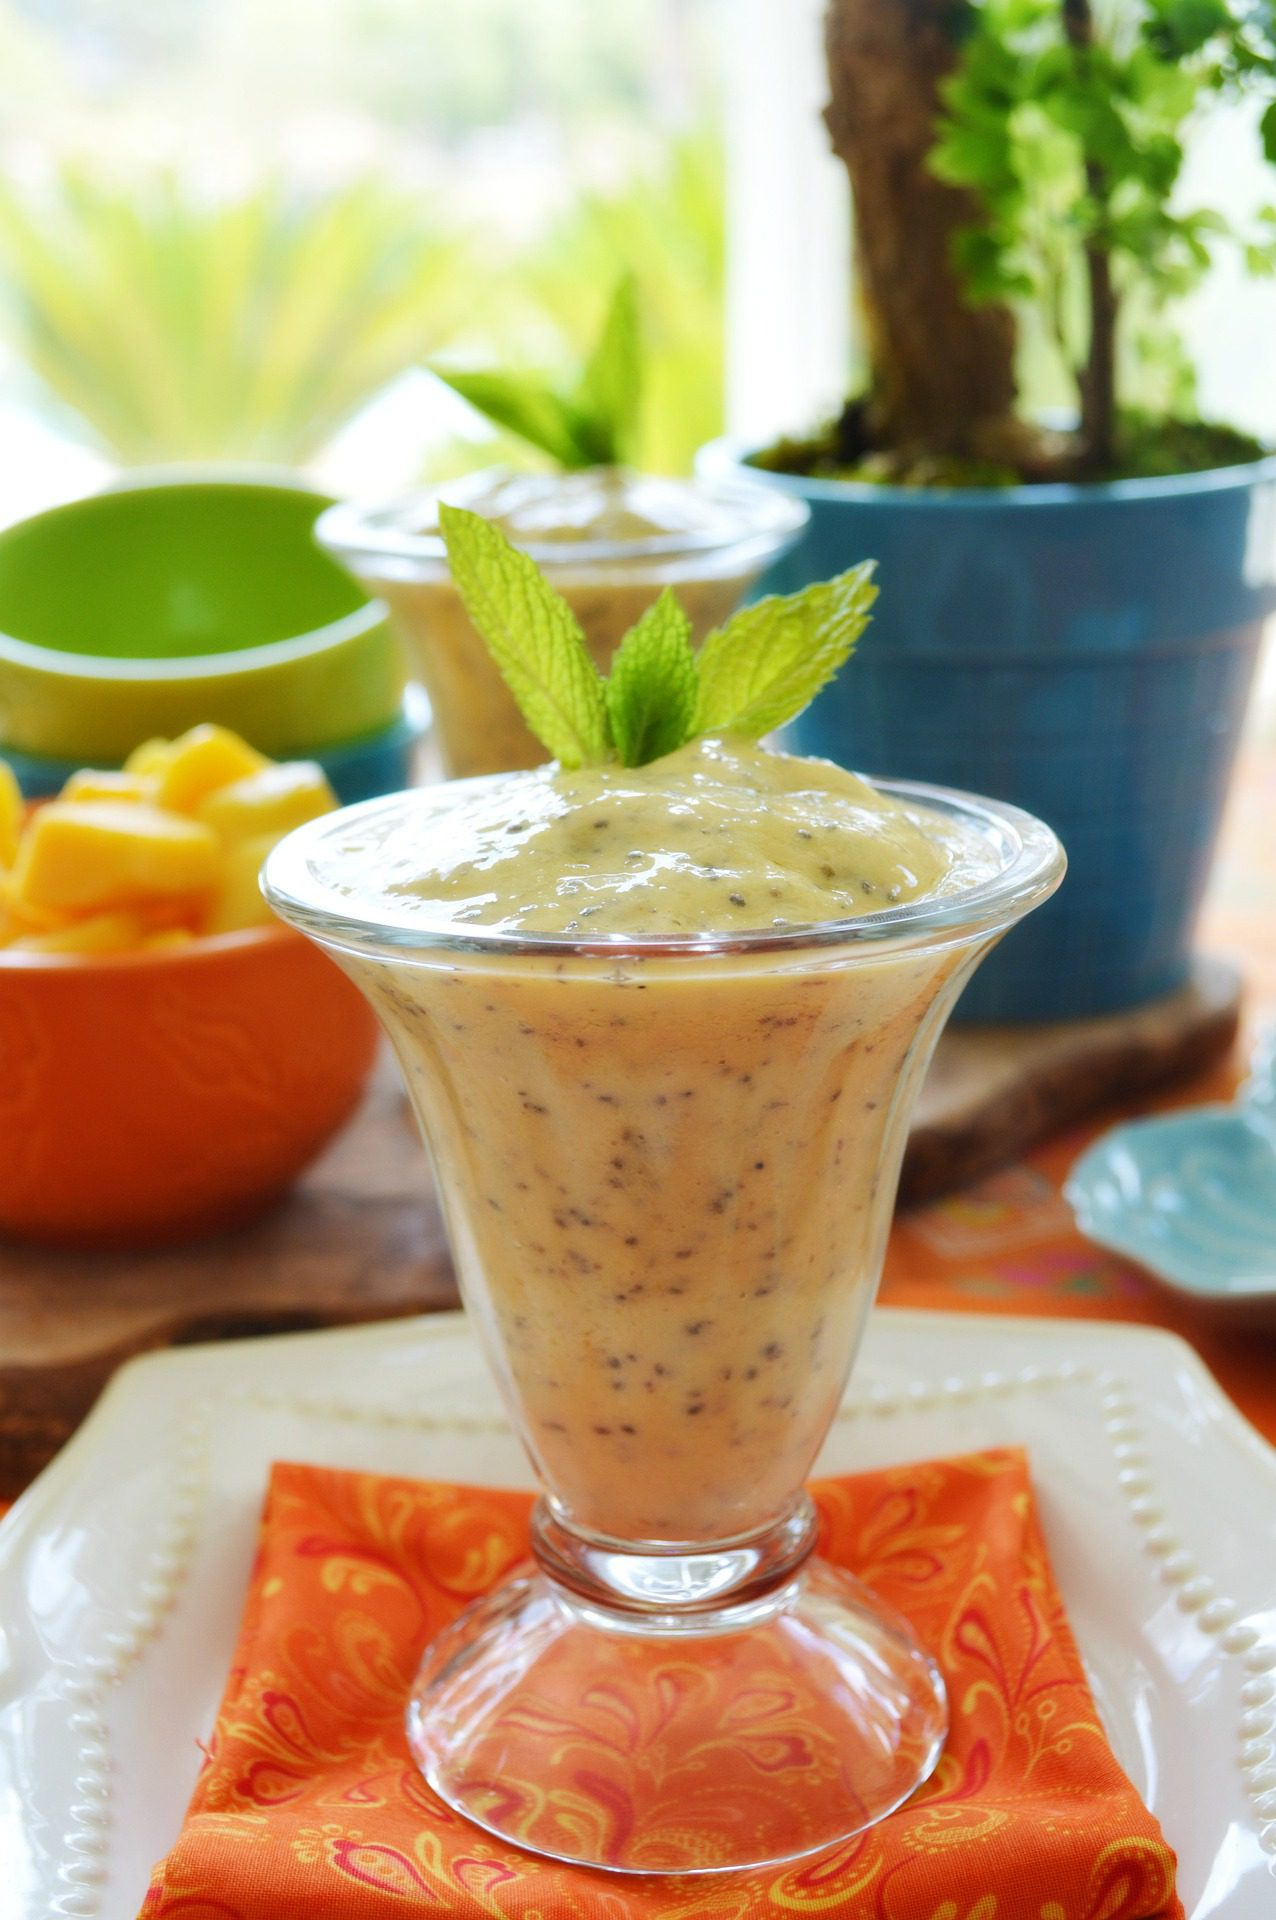 Mango and Chia Seed Smoothie